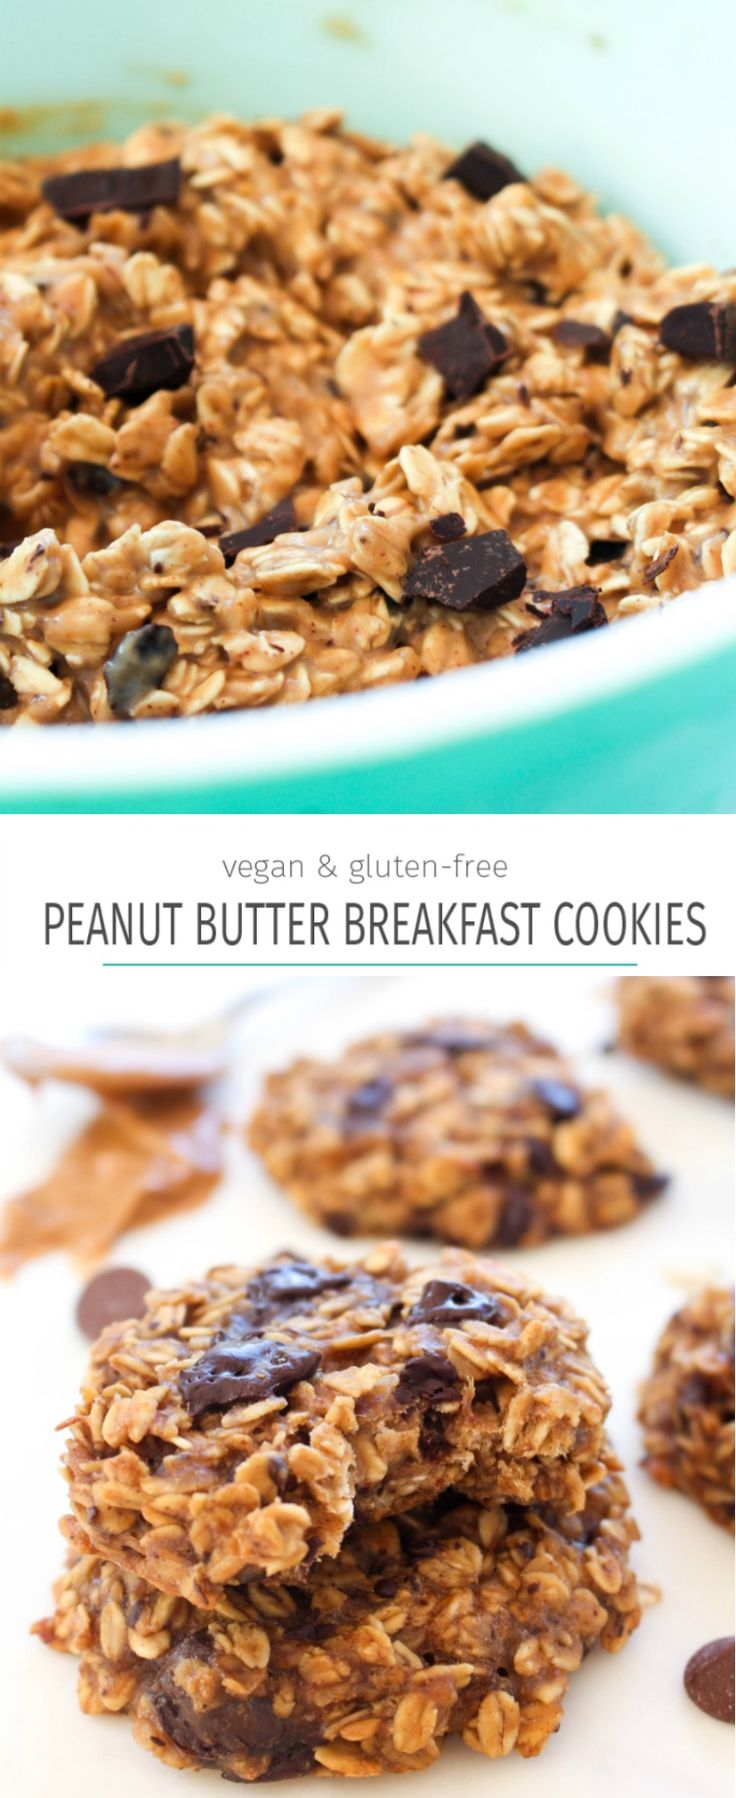 Peanut butter banana breakfast cookies recipe. A great healthy breakfast or snack that tastes like dessert!